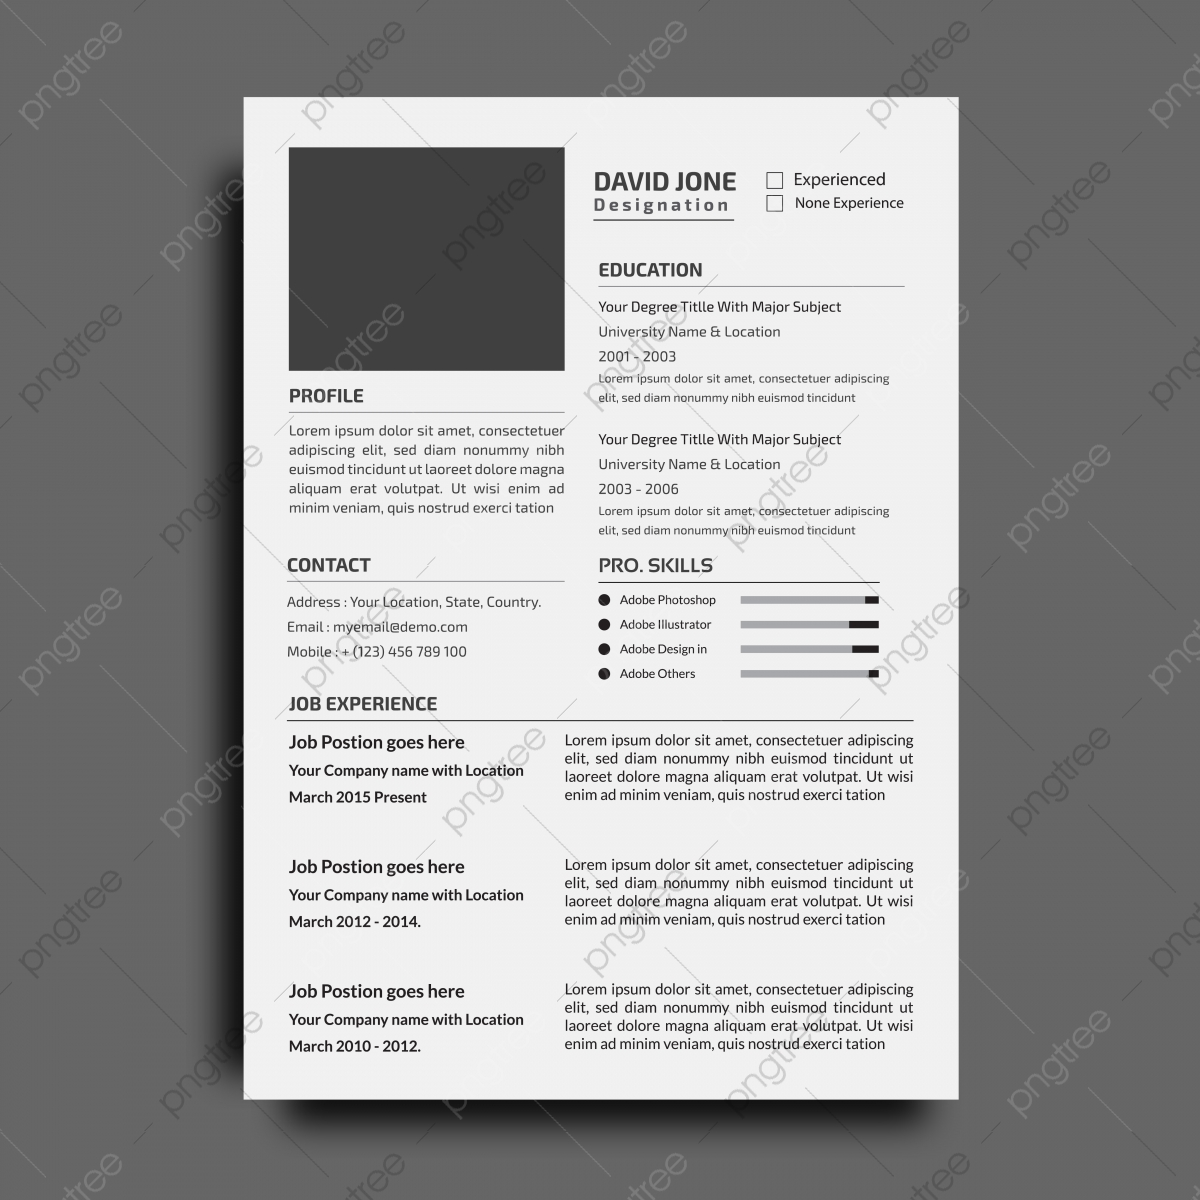 Free Professional Cv Template Word from png.pngtree.com